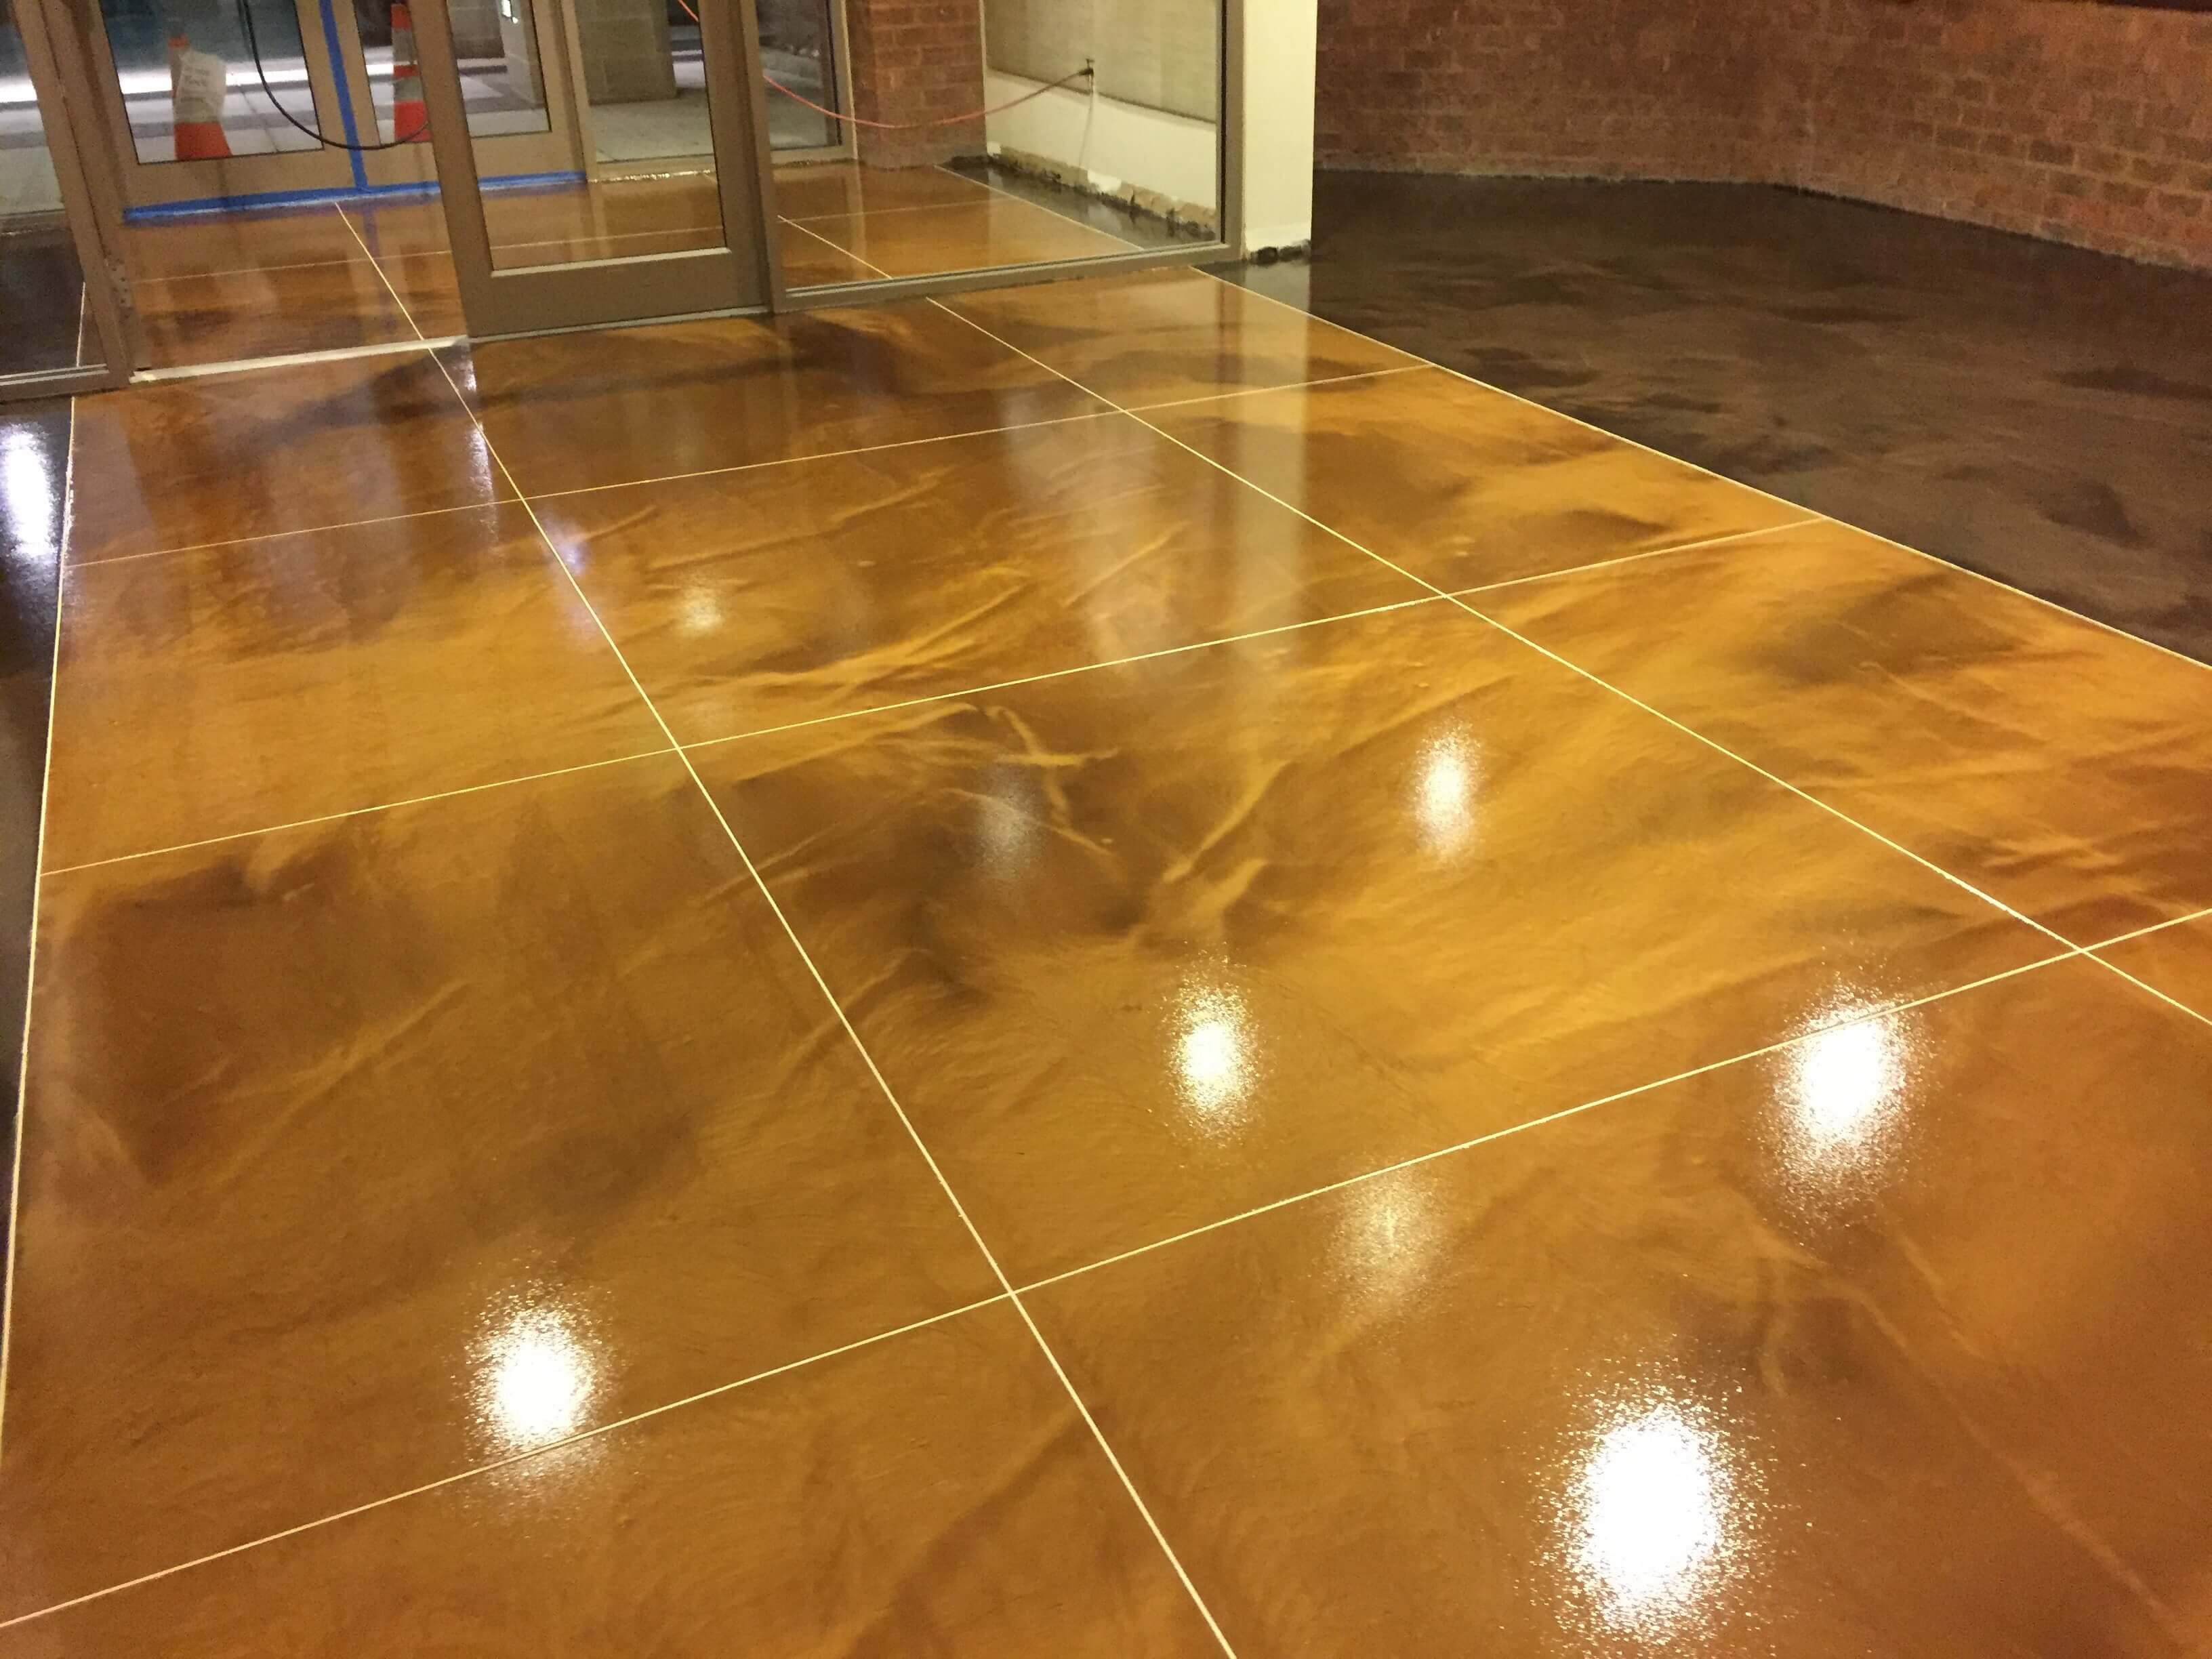 Hardwood Floor Refinishing Ellicott City Md Of Metrocrete Potomac Garage solutions Ellicott Md Pertaining to Polished Concrete Epoxy Maryland Polished Concrete Flooring